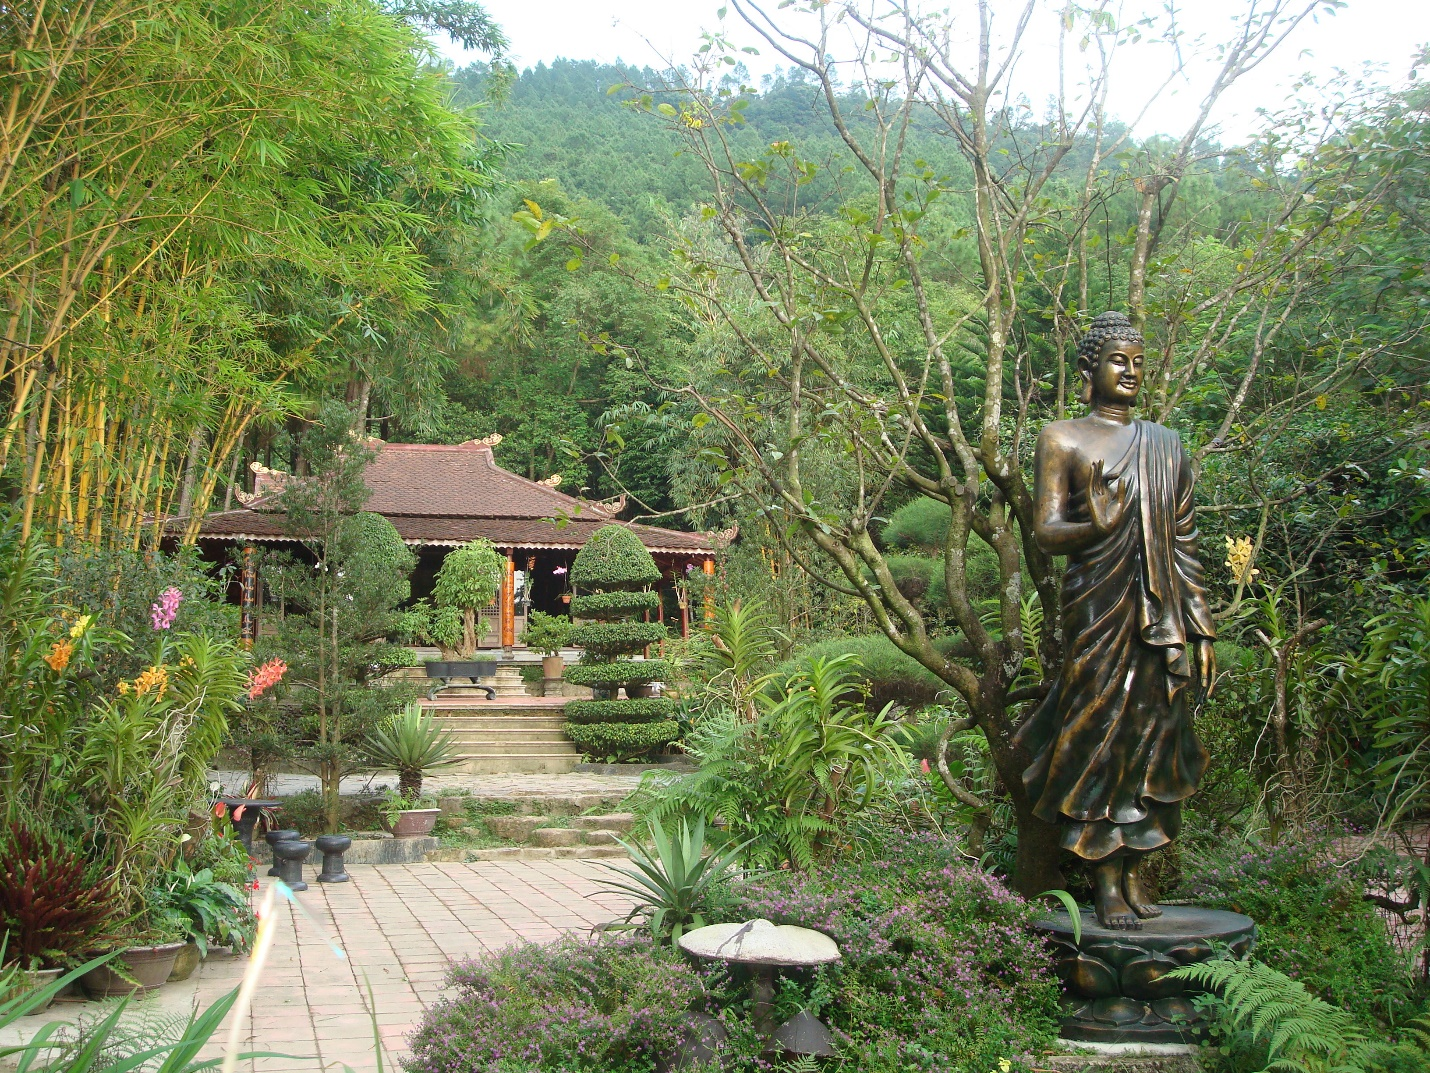 The peace in the campus of Huyen Khong Son Thuong Pagoda